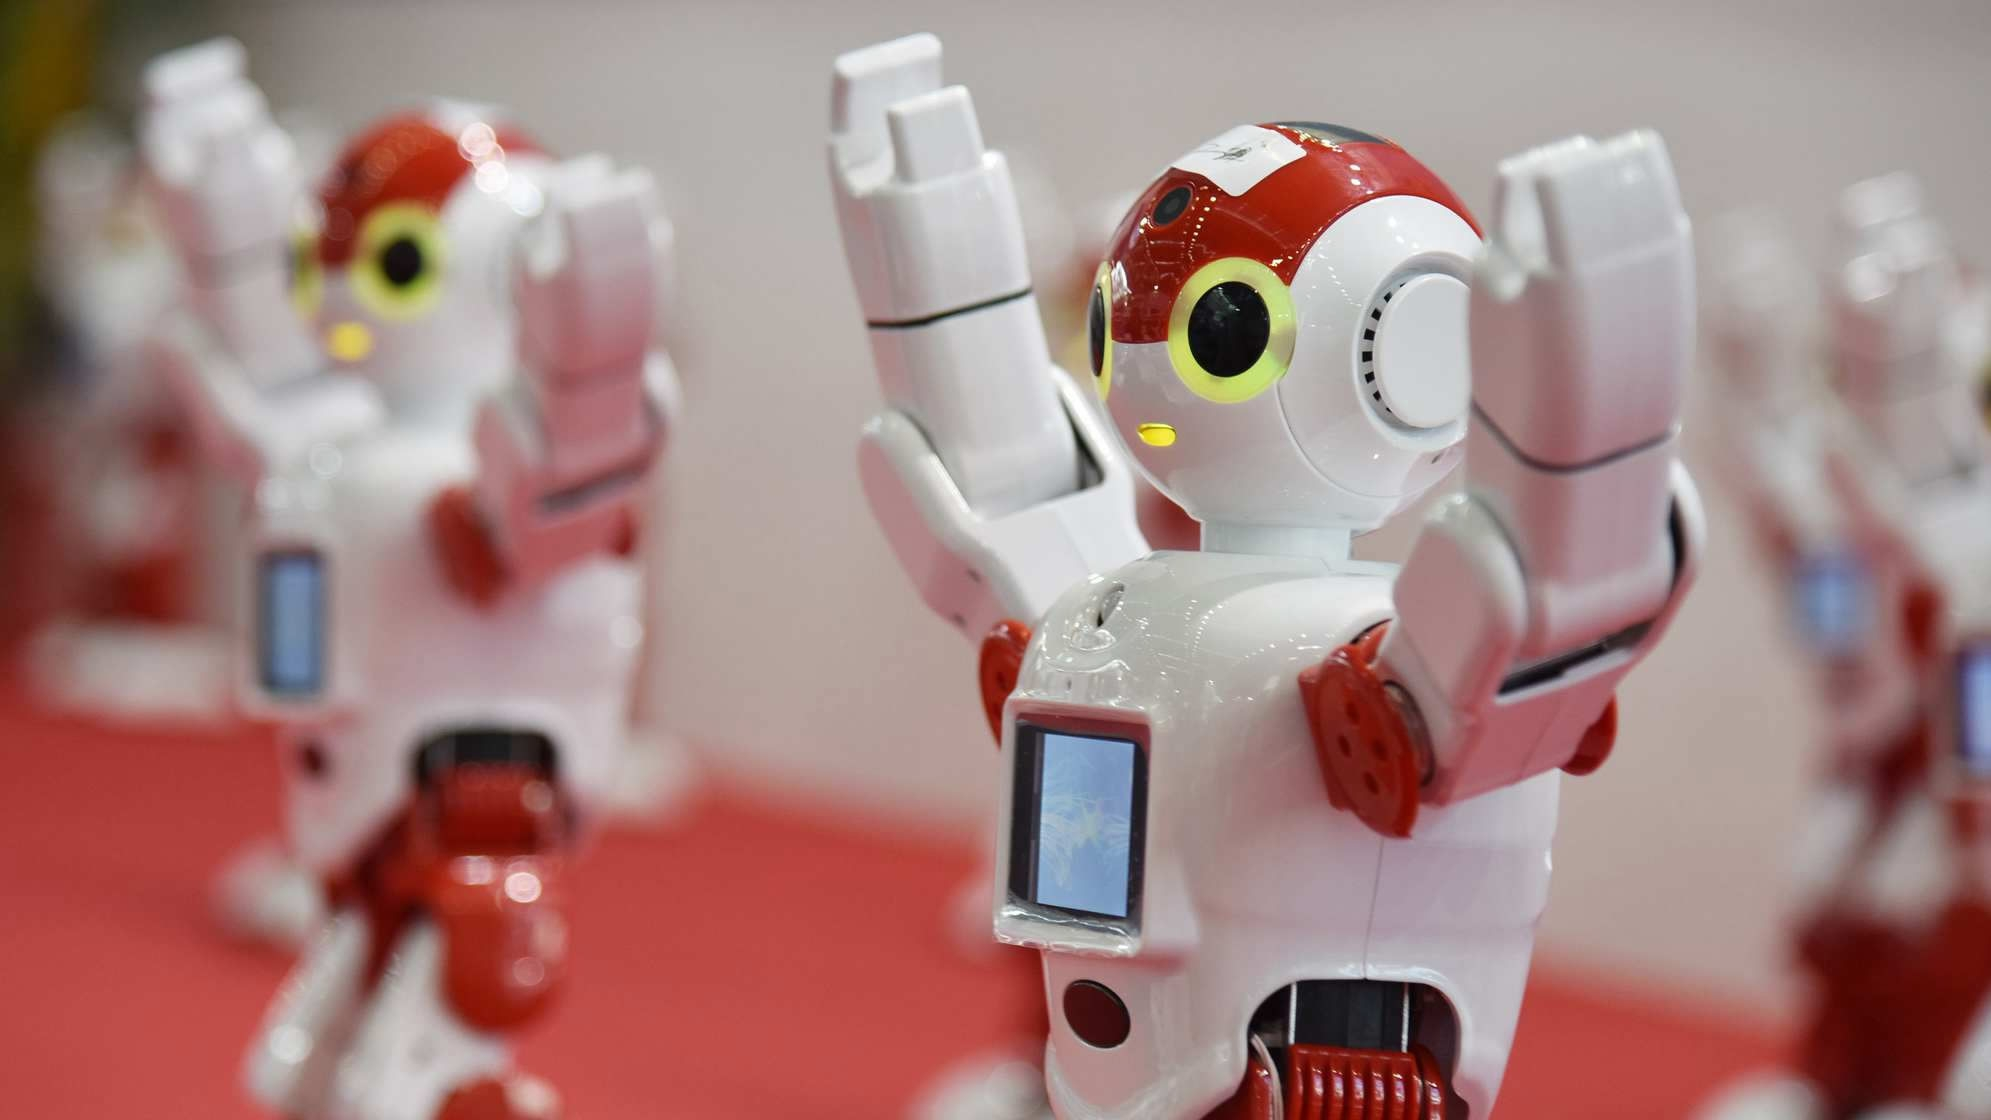 Robot developed to improve pharmacy services in China